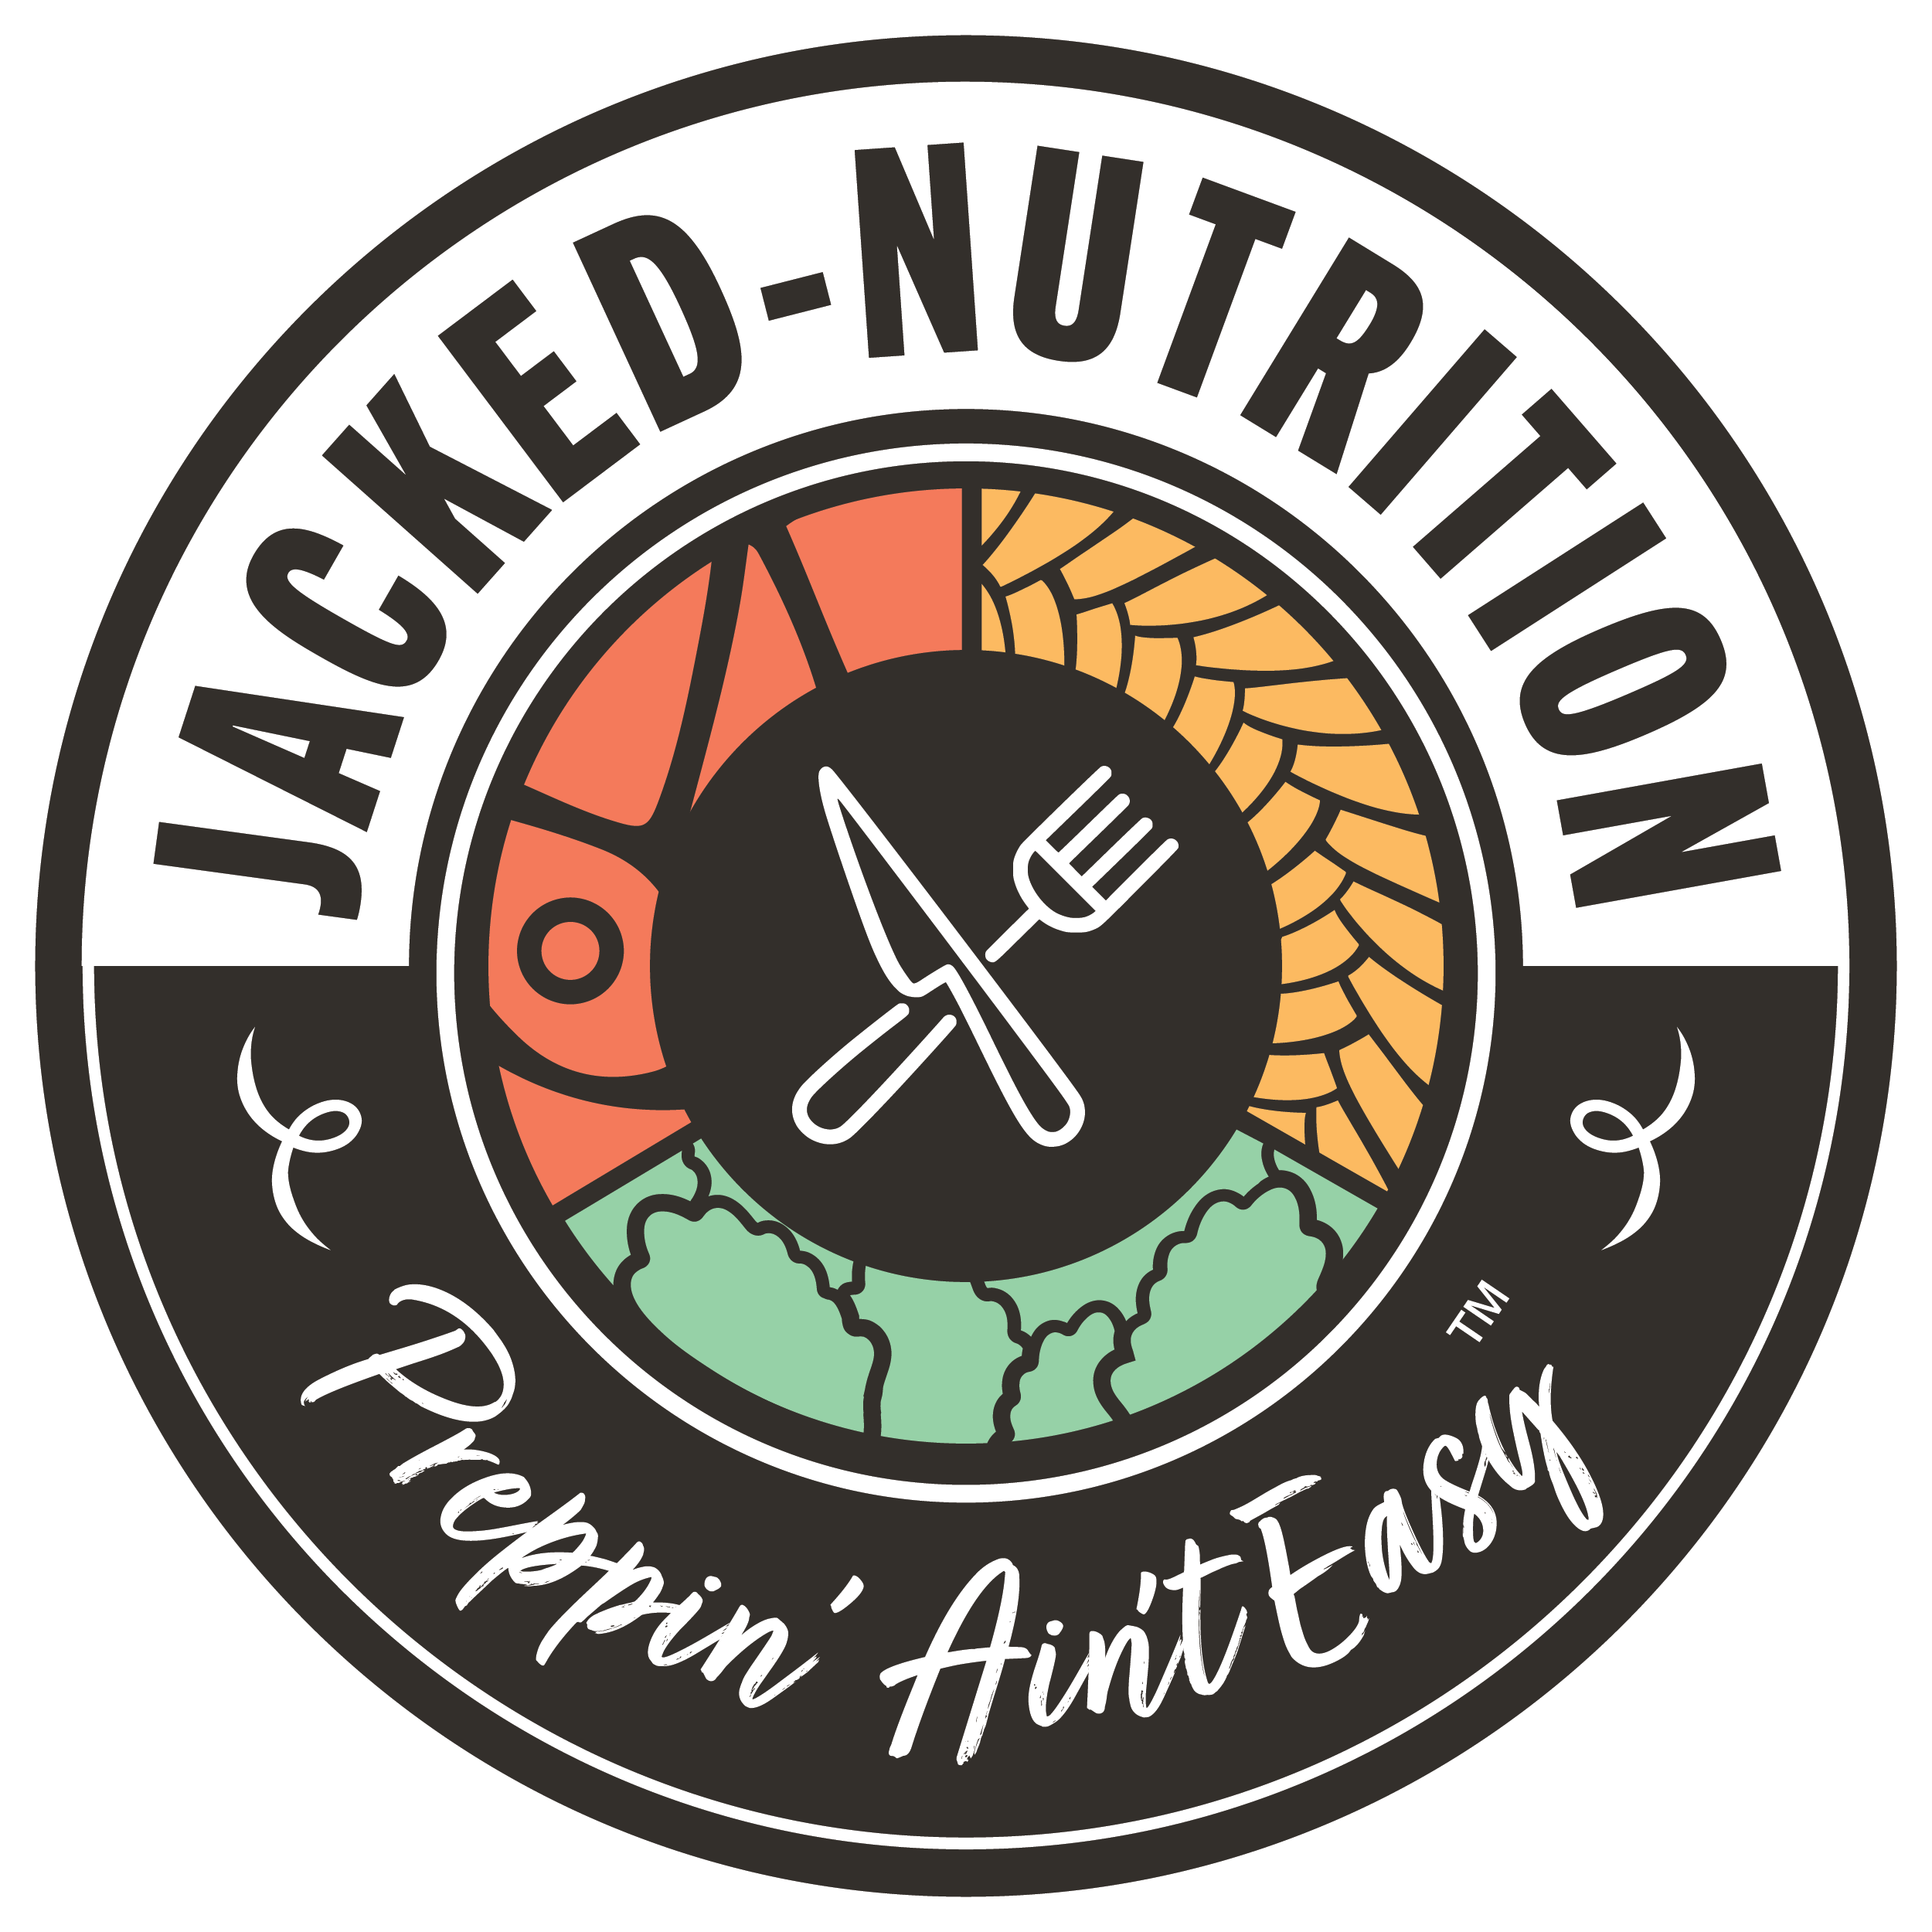 Jacked Nutrition